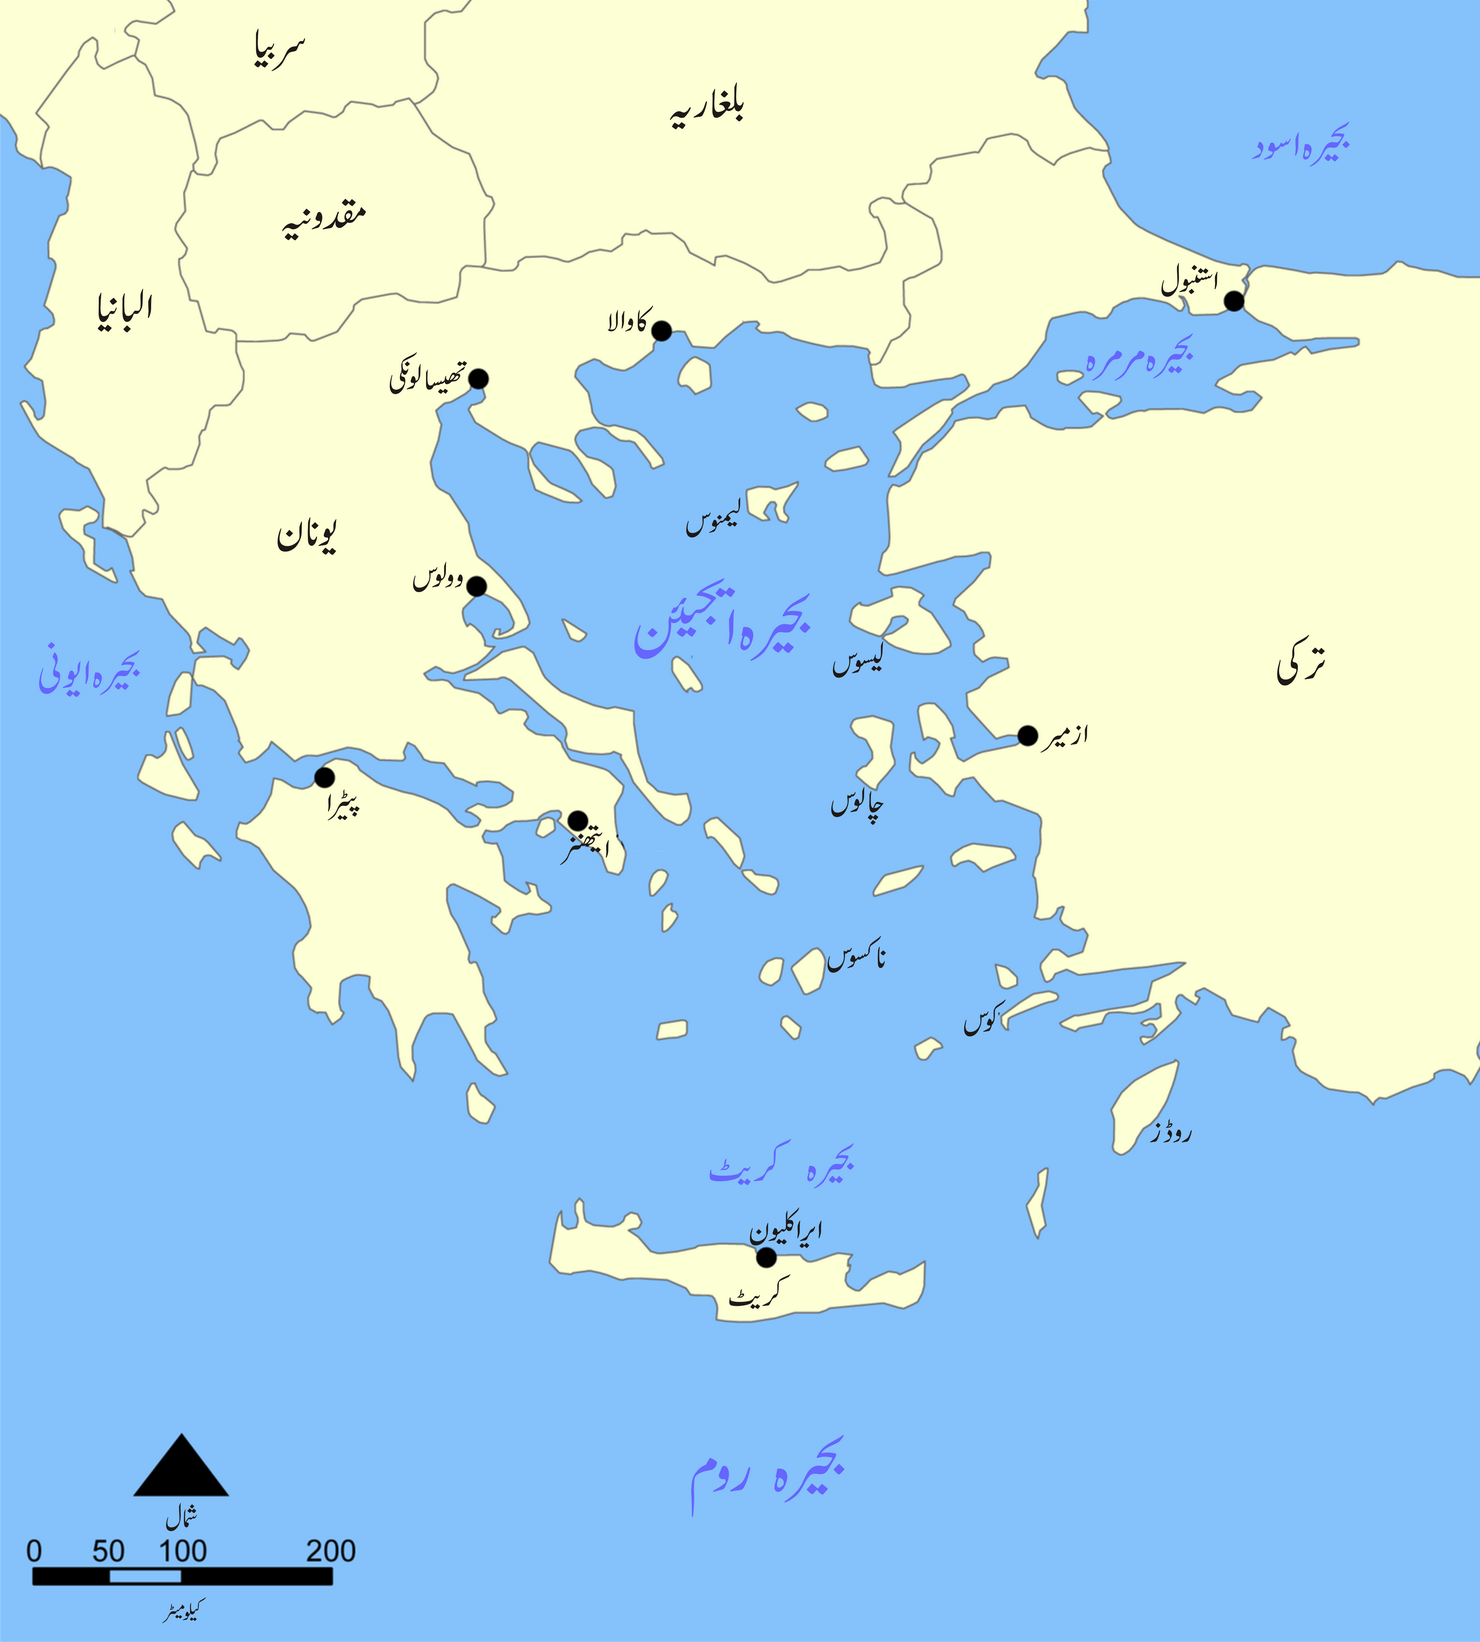 File:Aegean Sea map Urdu.png - Wikimedia Commons on red sea, map of troy, map of english channel, map of gulf of aden, map of africa, map of balkan mountains, map of persian gulf, north sea, black sea, map of mesopotamia, baltic sea, caspian sea, sea of marmara, map of suez canal, map of turkey, map of bosporus, map of europe, map of tigris river, mediterranean sea, map of greece, map of gulf of finland, map of mediterranean, map of macedonia, map of spain, map of cyclades, map of dardanelles, adriatic sea, map of athens, ionian sea,